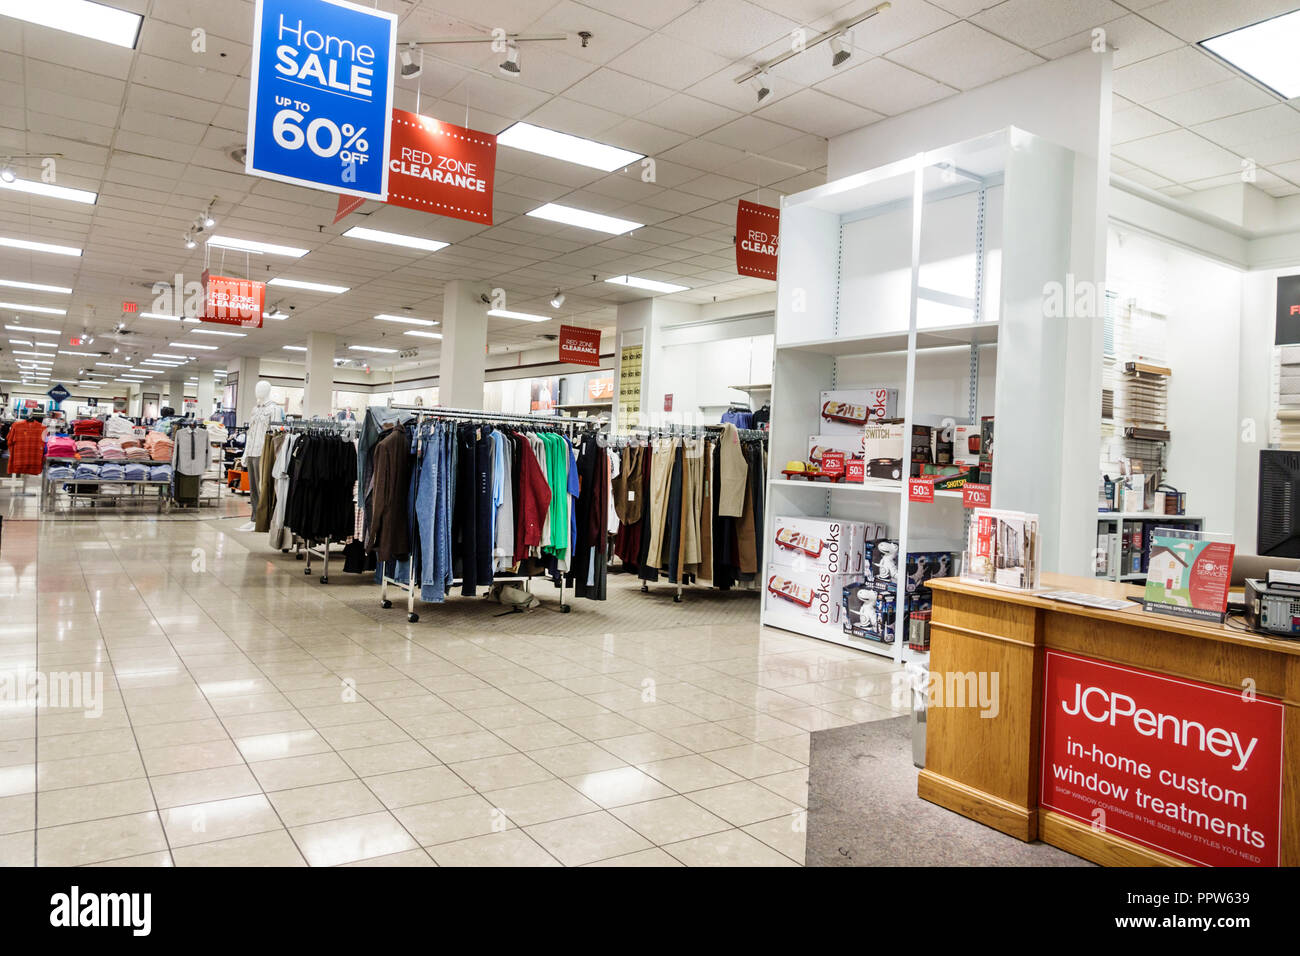 Miami Florida Kendall Dadeland Mall JC J.C. Penny Department Store shopping inside sale display - Stock Image